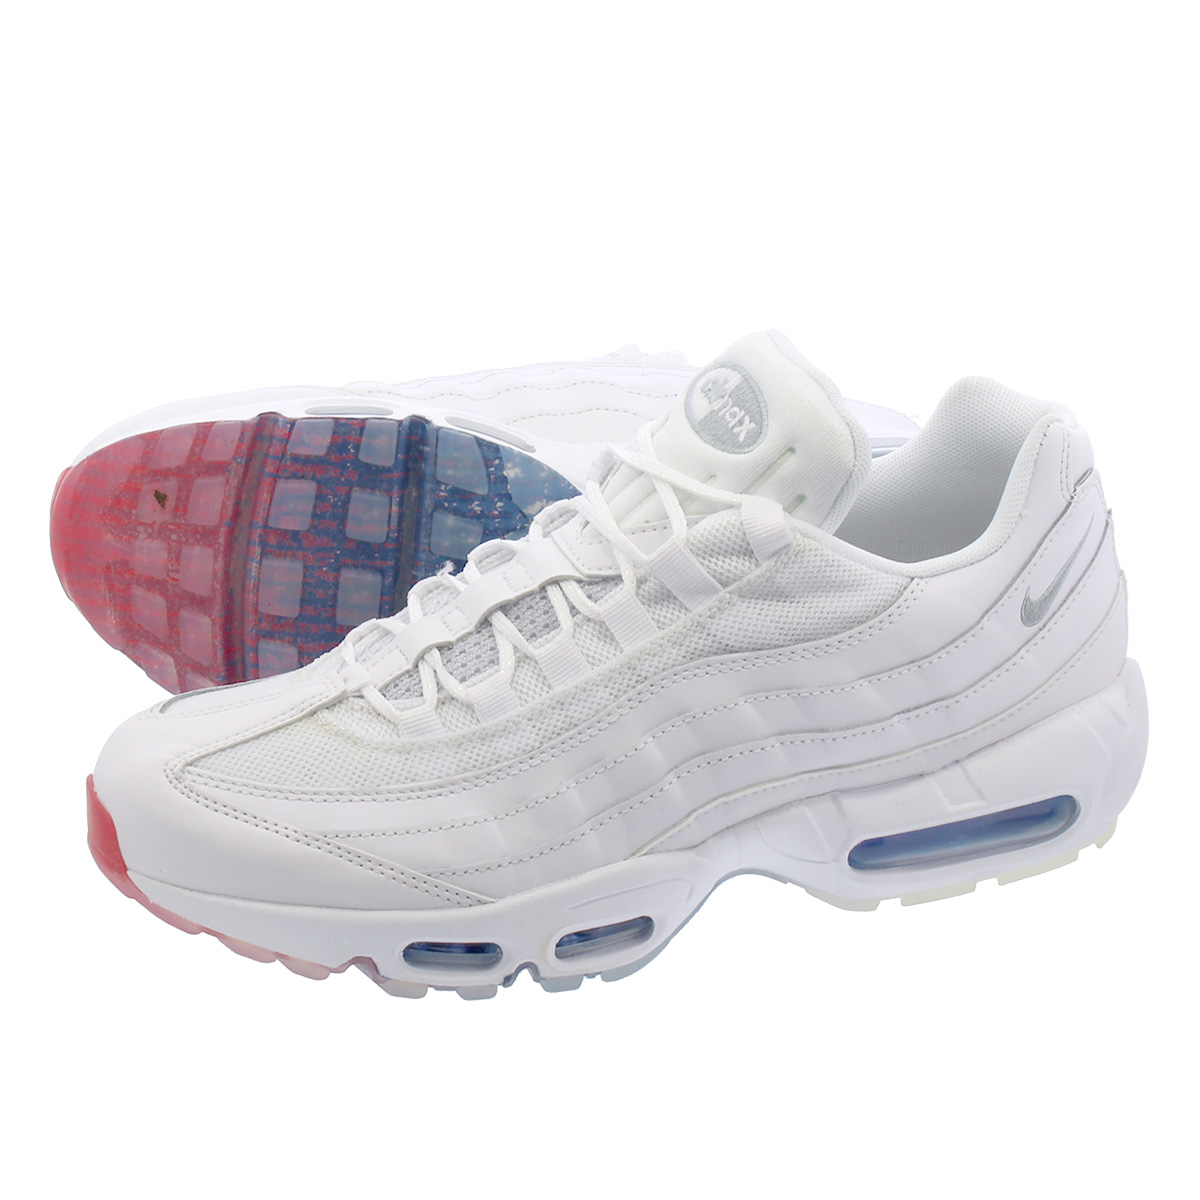 low priced 03475 be339 NIKE AIR MAX 95 Kie Ney AMAX 95 WHITE/PHOTO BLUE aq7981-100